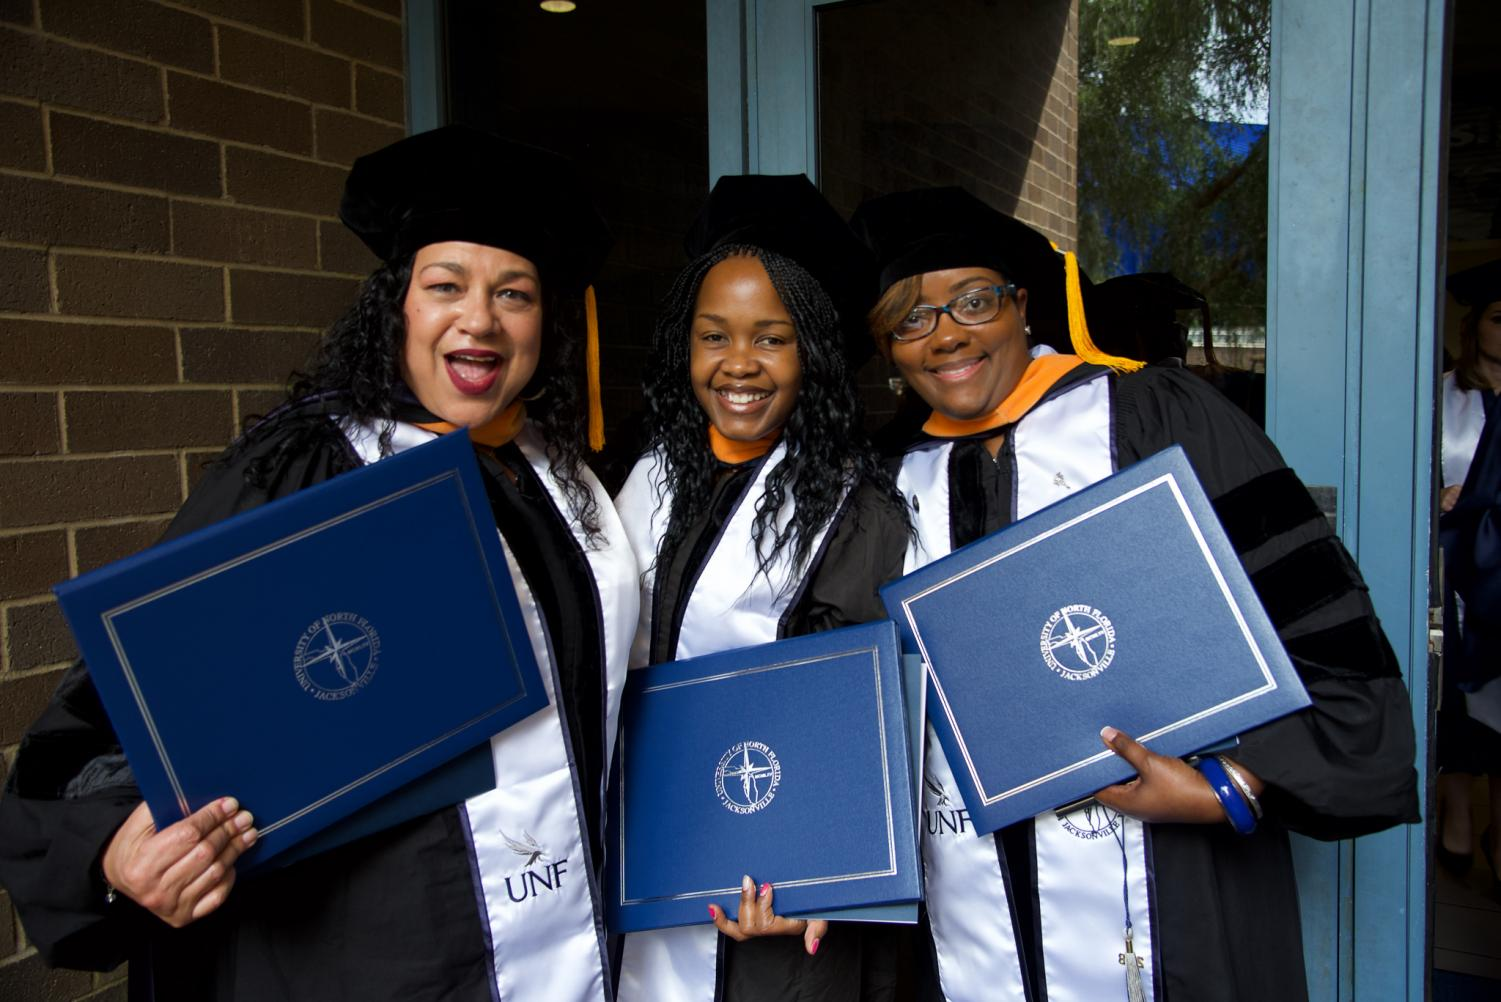 Brooks+College+of+Health+Doctoral+graduates+proudly+displying+their+degrees.